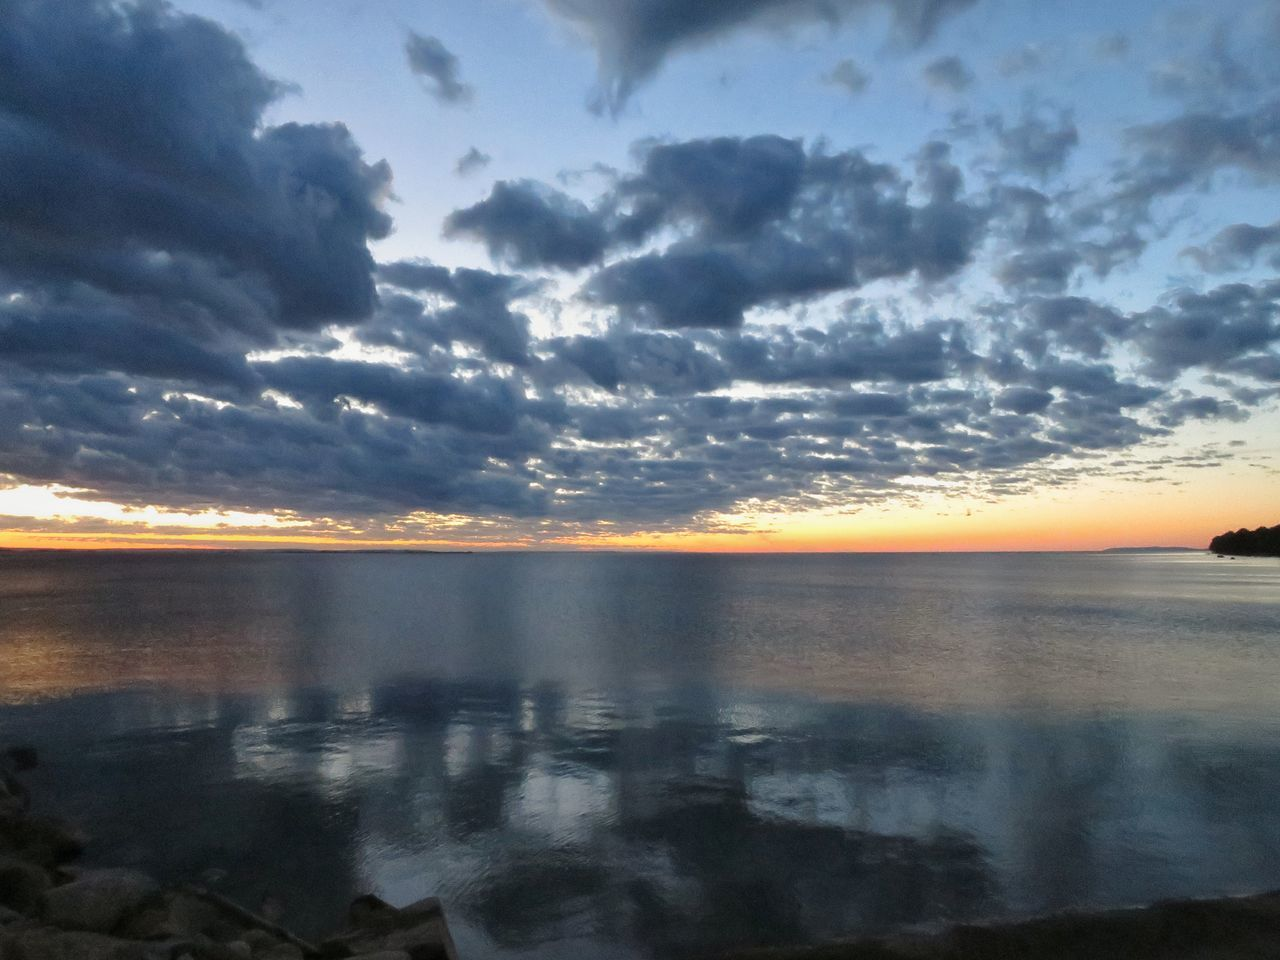 sunset, scenics, sky, nature, tranquility, beauty in nature, water, cloud - sky, tranquil scene, sea, reflection, no people, idyllic, outdoors, horizon over water, storm cloud, day